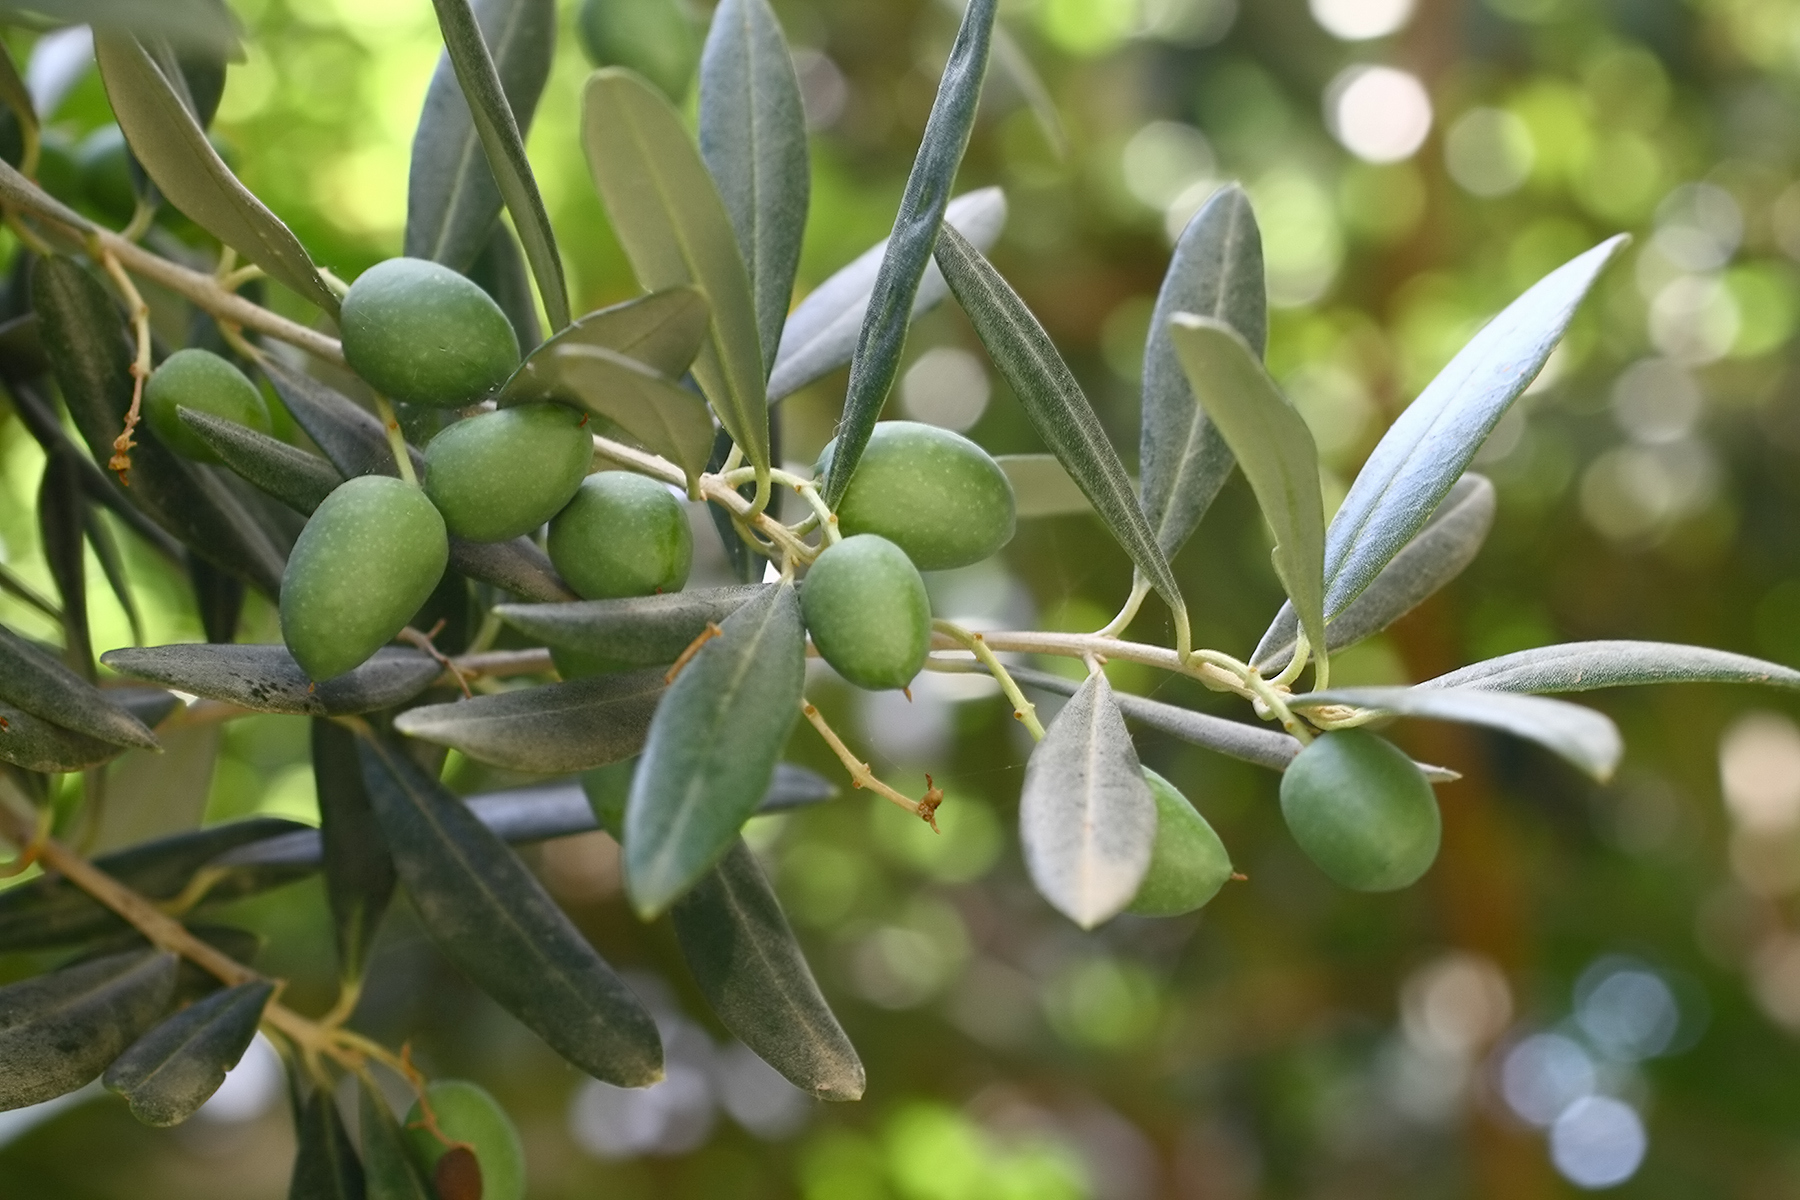 Does Olive Leaf Extract Kill Cancer Cells?